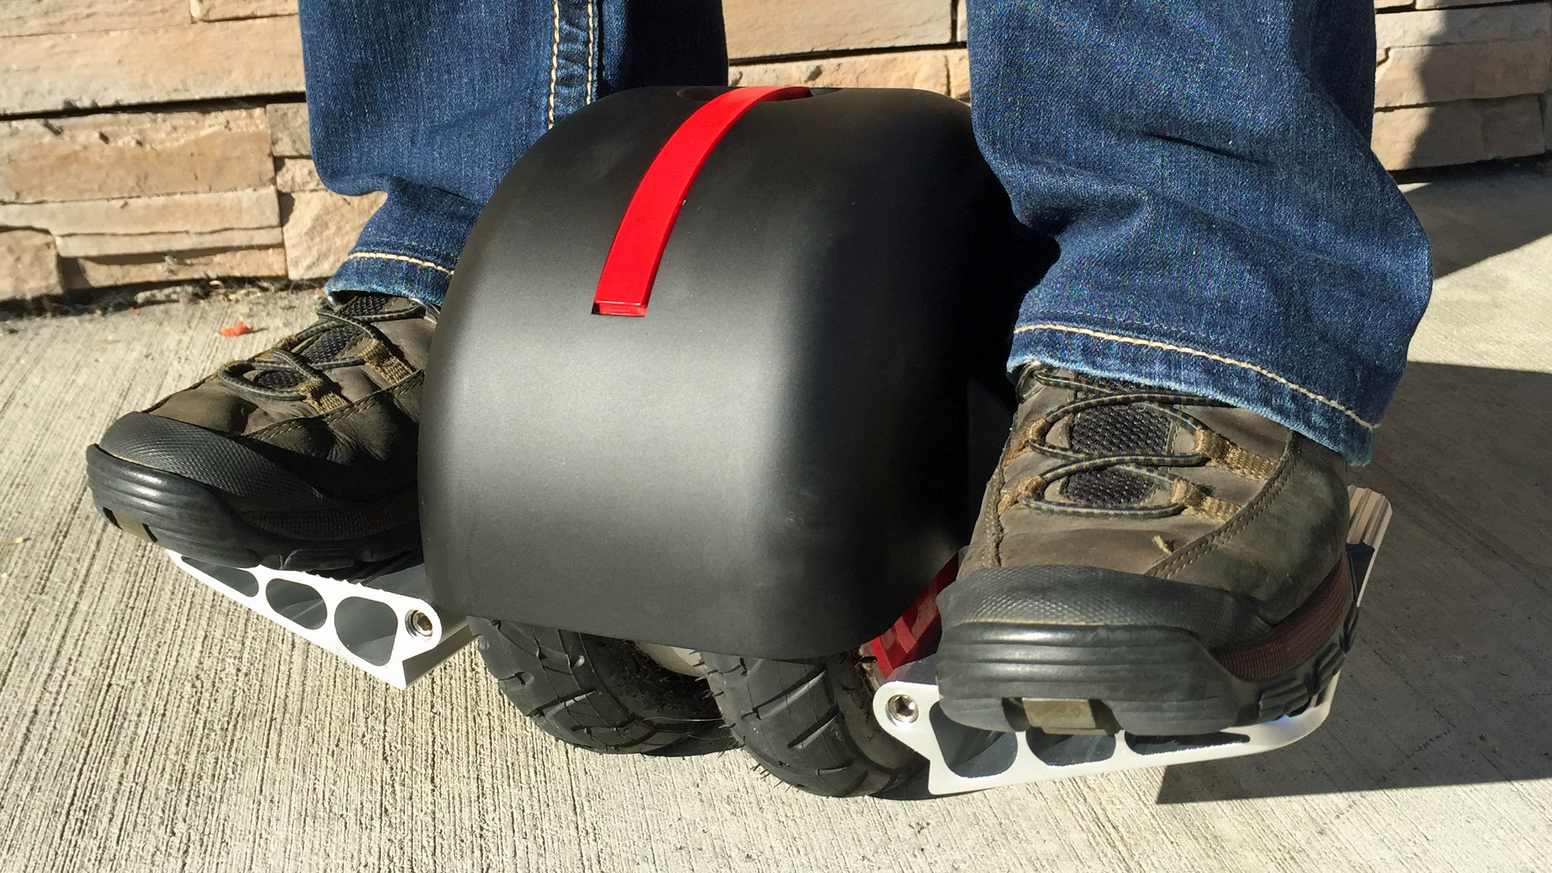 A very small self-balancing personal electric vehicle from the creators of the Solowheel and Hovertrax - the original hoverboard.